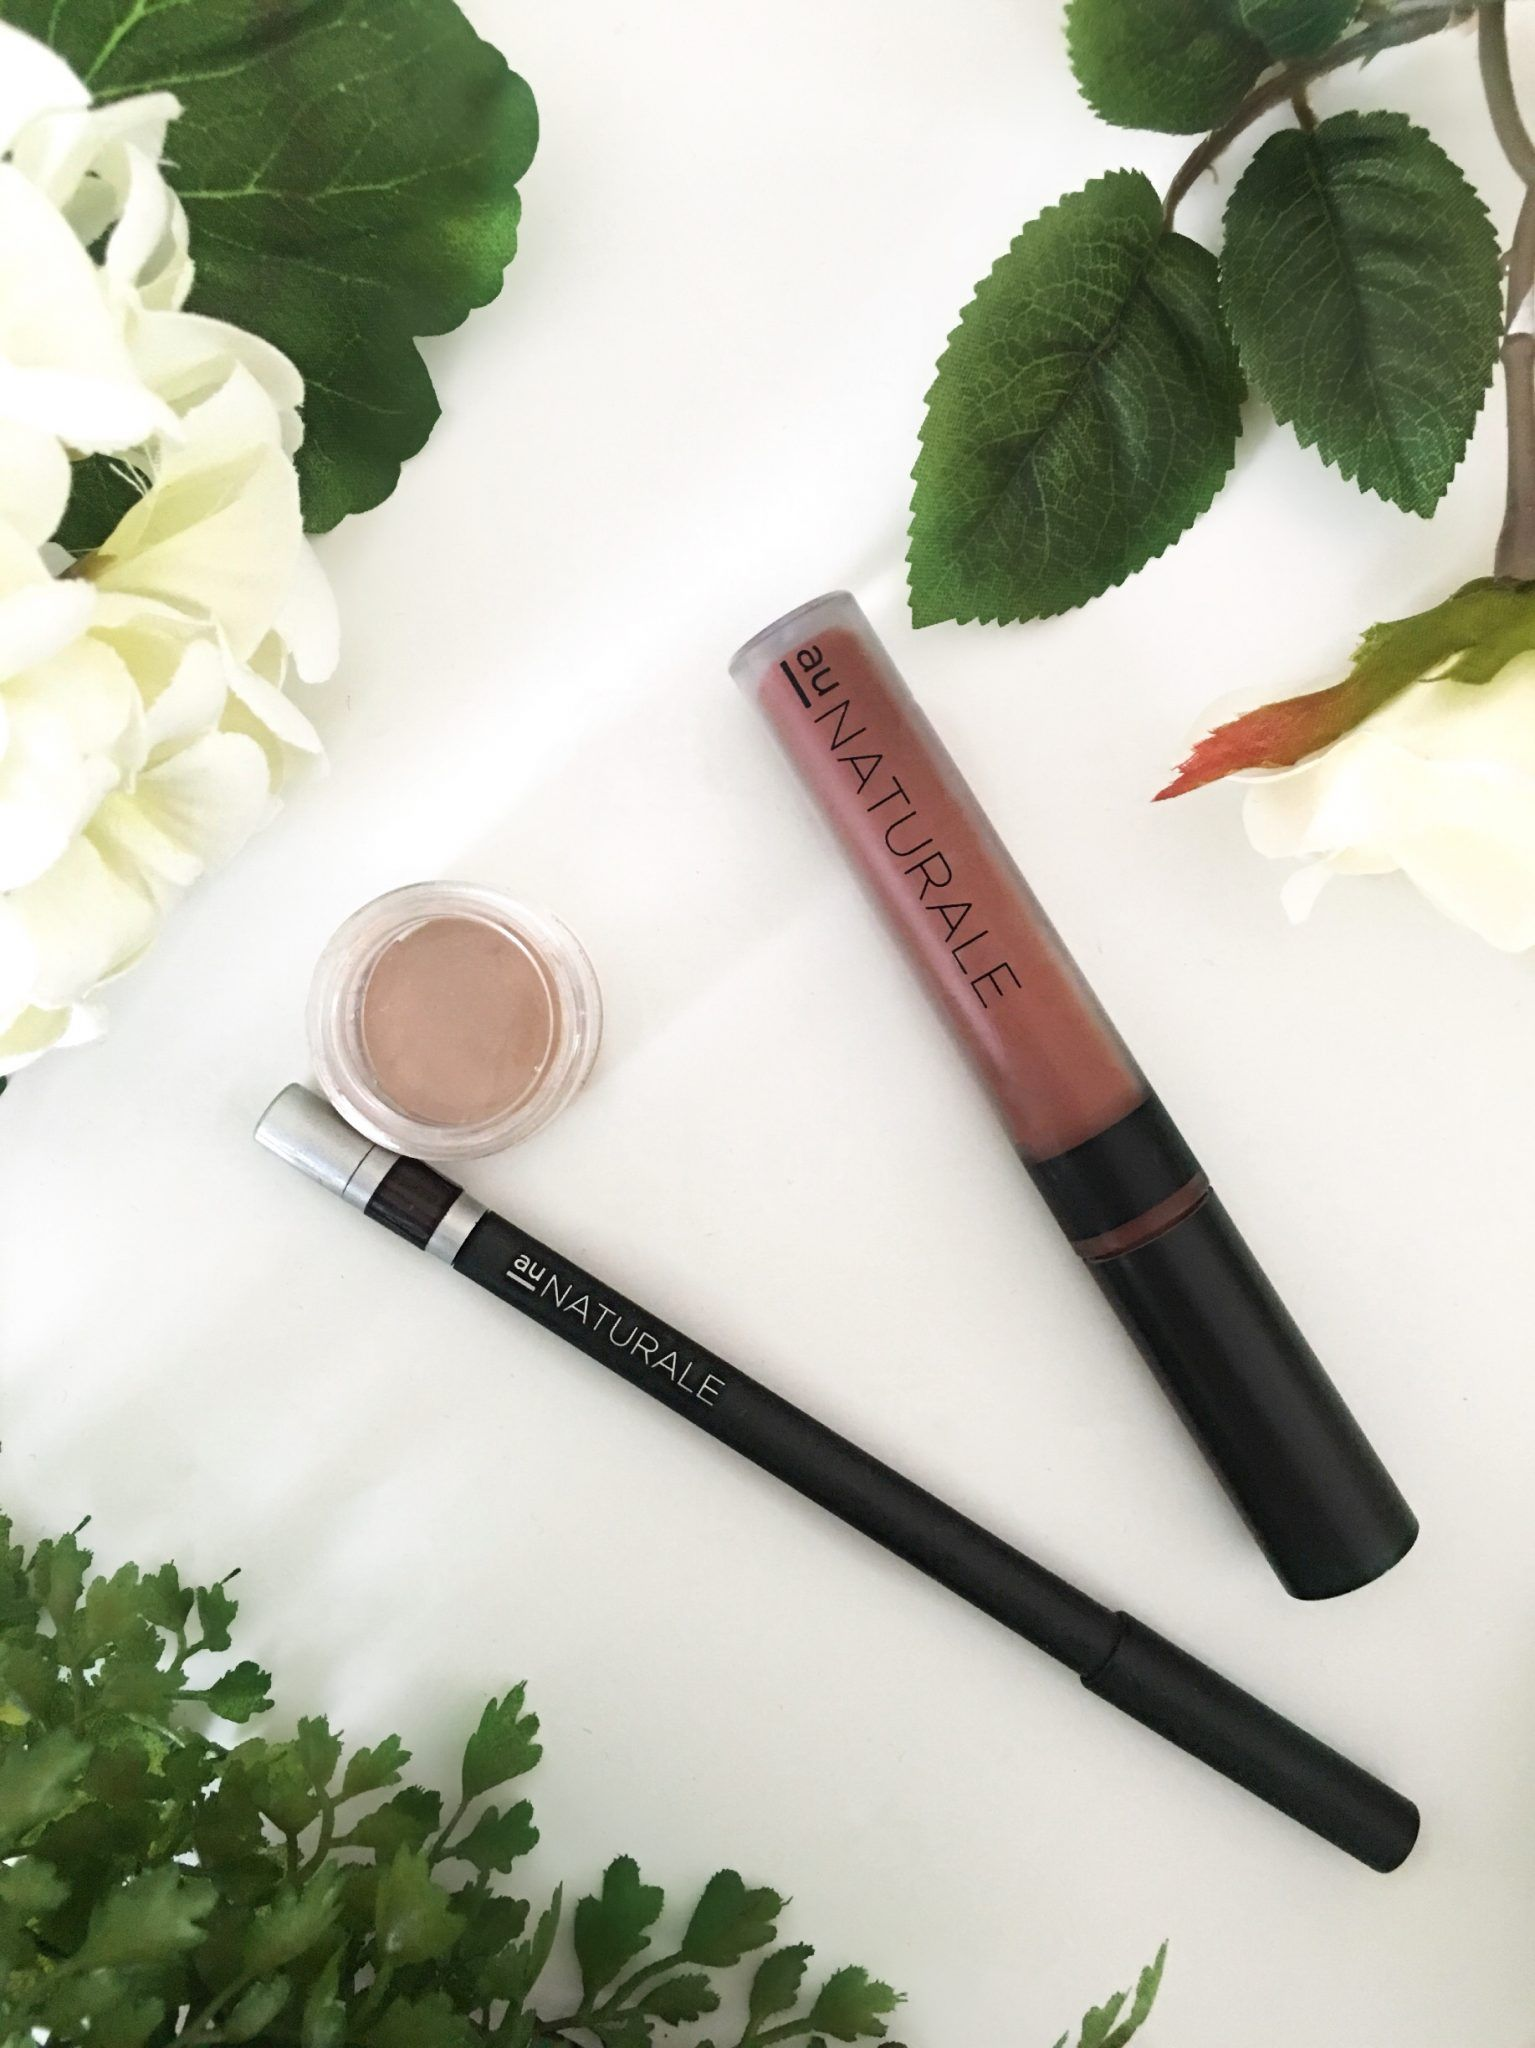 Au Naturale Su/Stain Matte Lip Stain in Mousse, Concealer